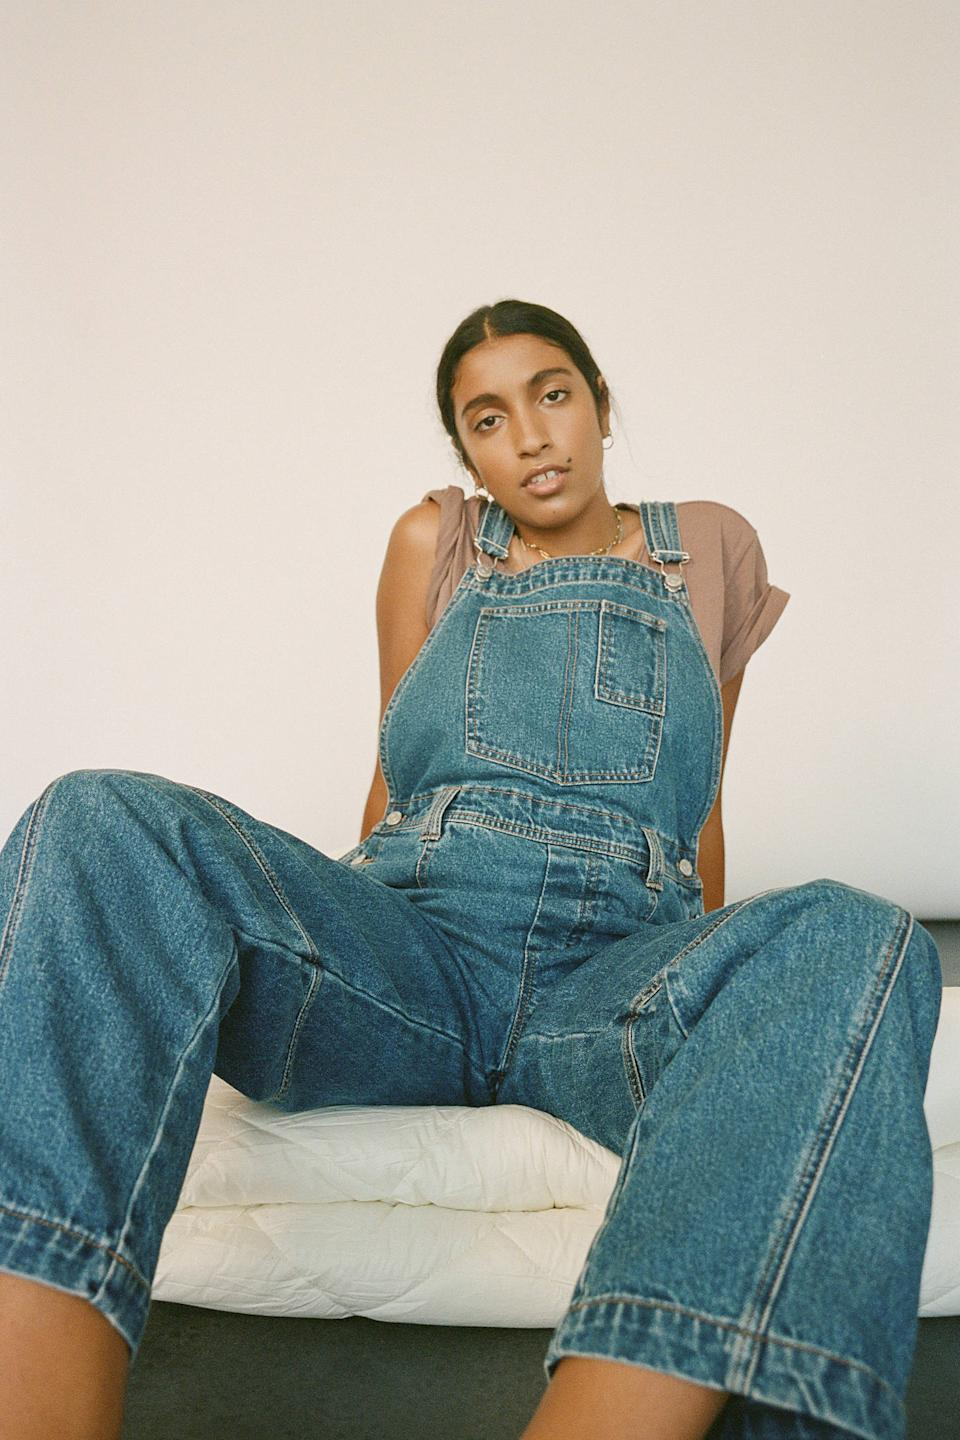 """<br><br><strong>BDG</strong> Baggy Denim Overall, $, available at <a href=""""https://go.skimresources.com/?id=30283X879131&url=https%3A%2F%2Fwww.urbanoutfitters.com%2Fshop%2Fbdg-baggy-denim-overall"""" rel=""""nofollow noopener"""" target=""""_blank"""" data-ylk=""""slk:Urban Outfitters"""" class=""""link rapid-noclick-resp"""">Urban Outfitters</a>"""